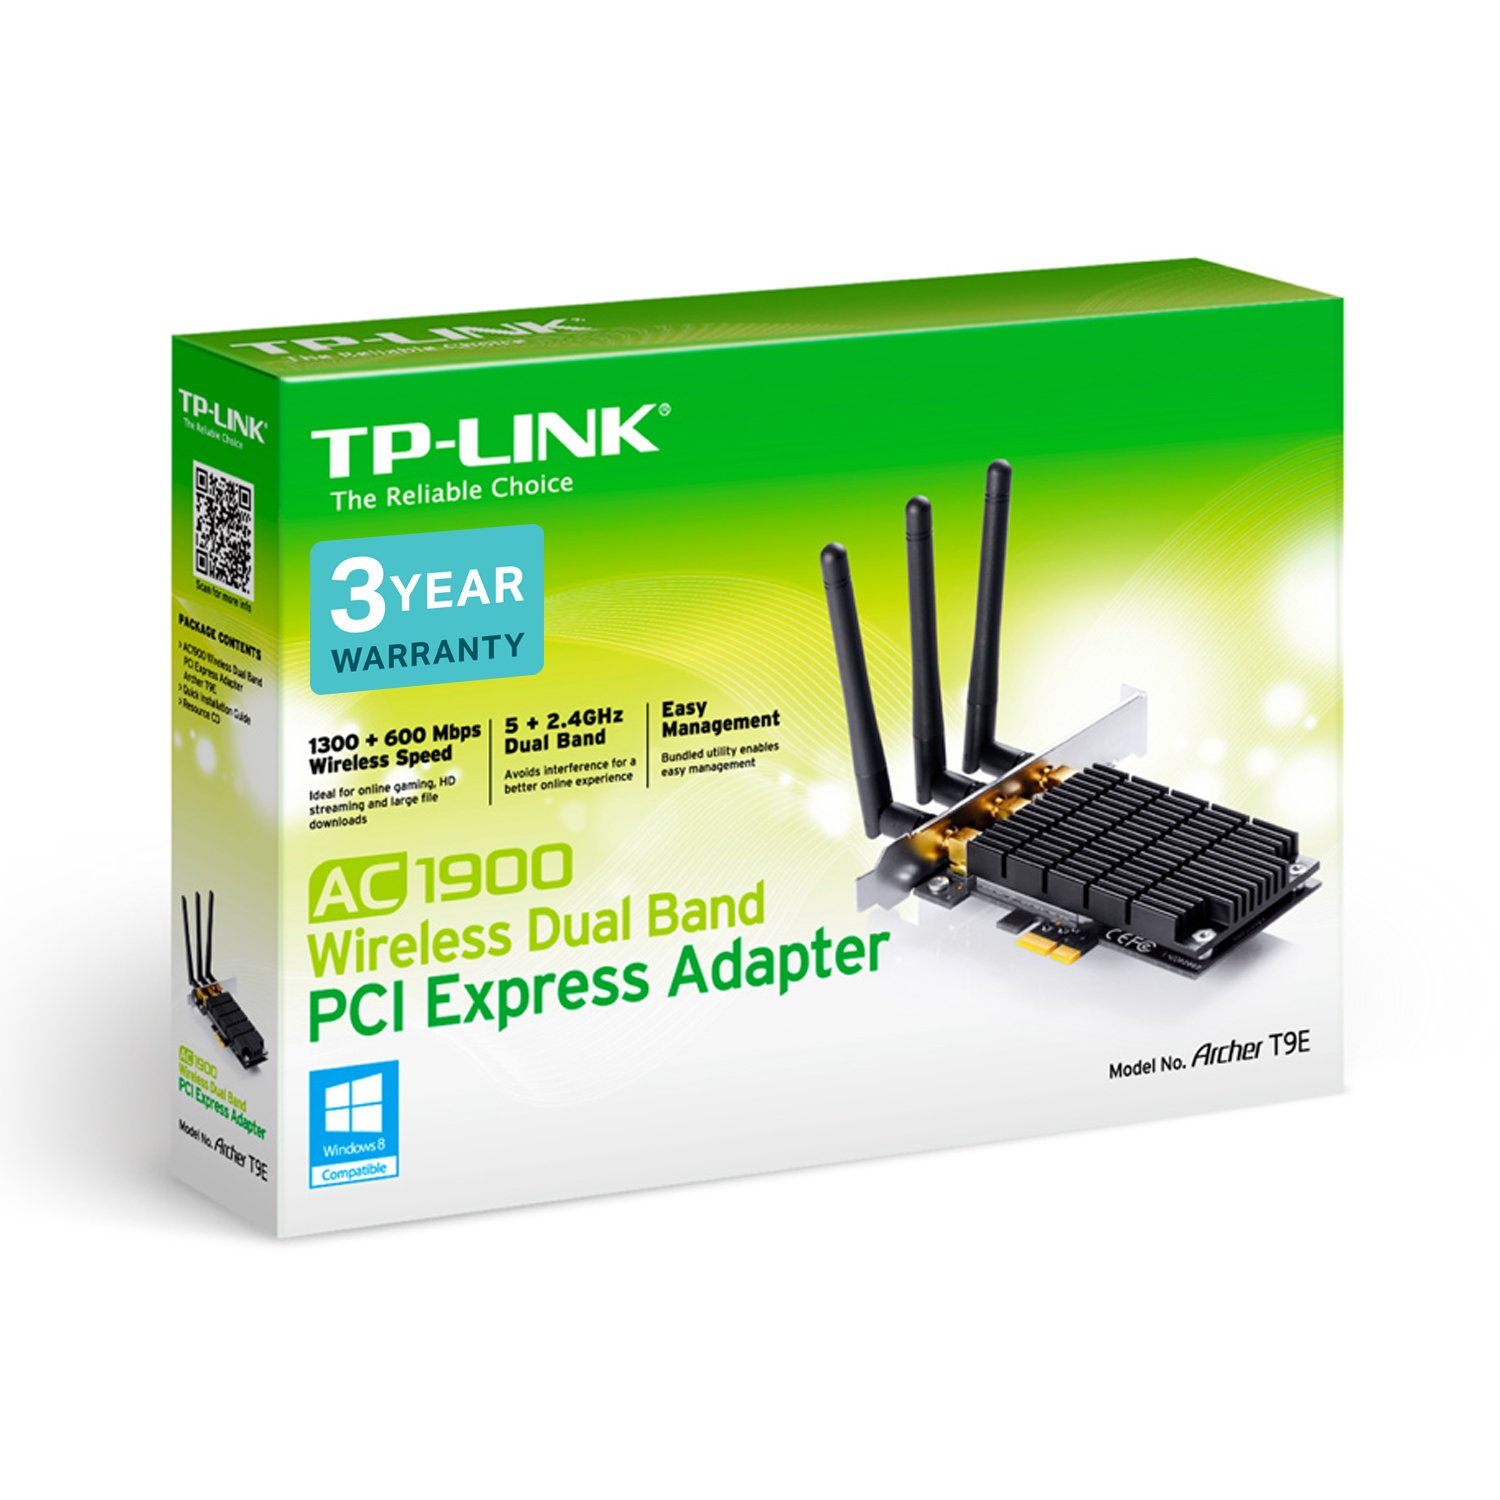 TP-Link AC1900 WiFi PCI-Express Wireless Network Card   Beamforming Technology (Archer T9E)